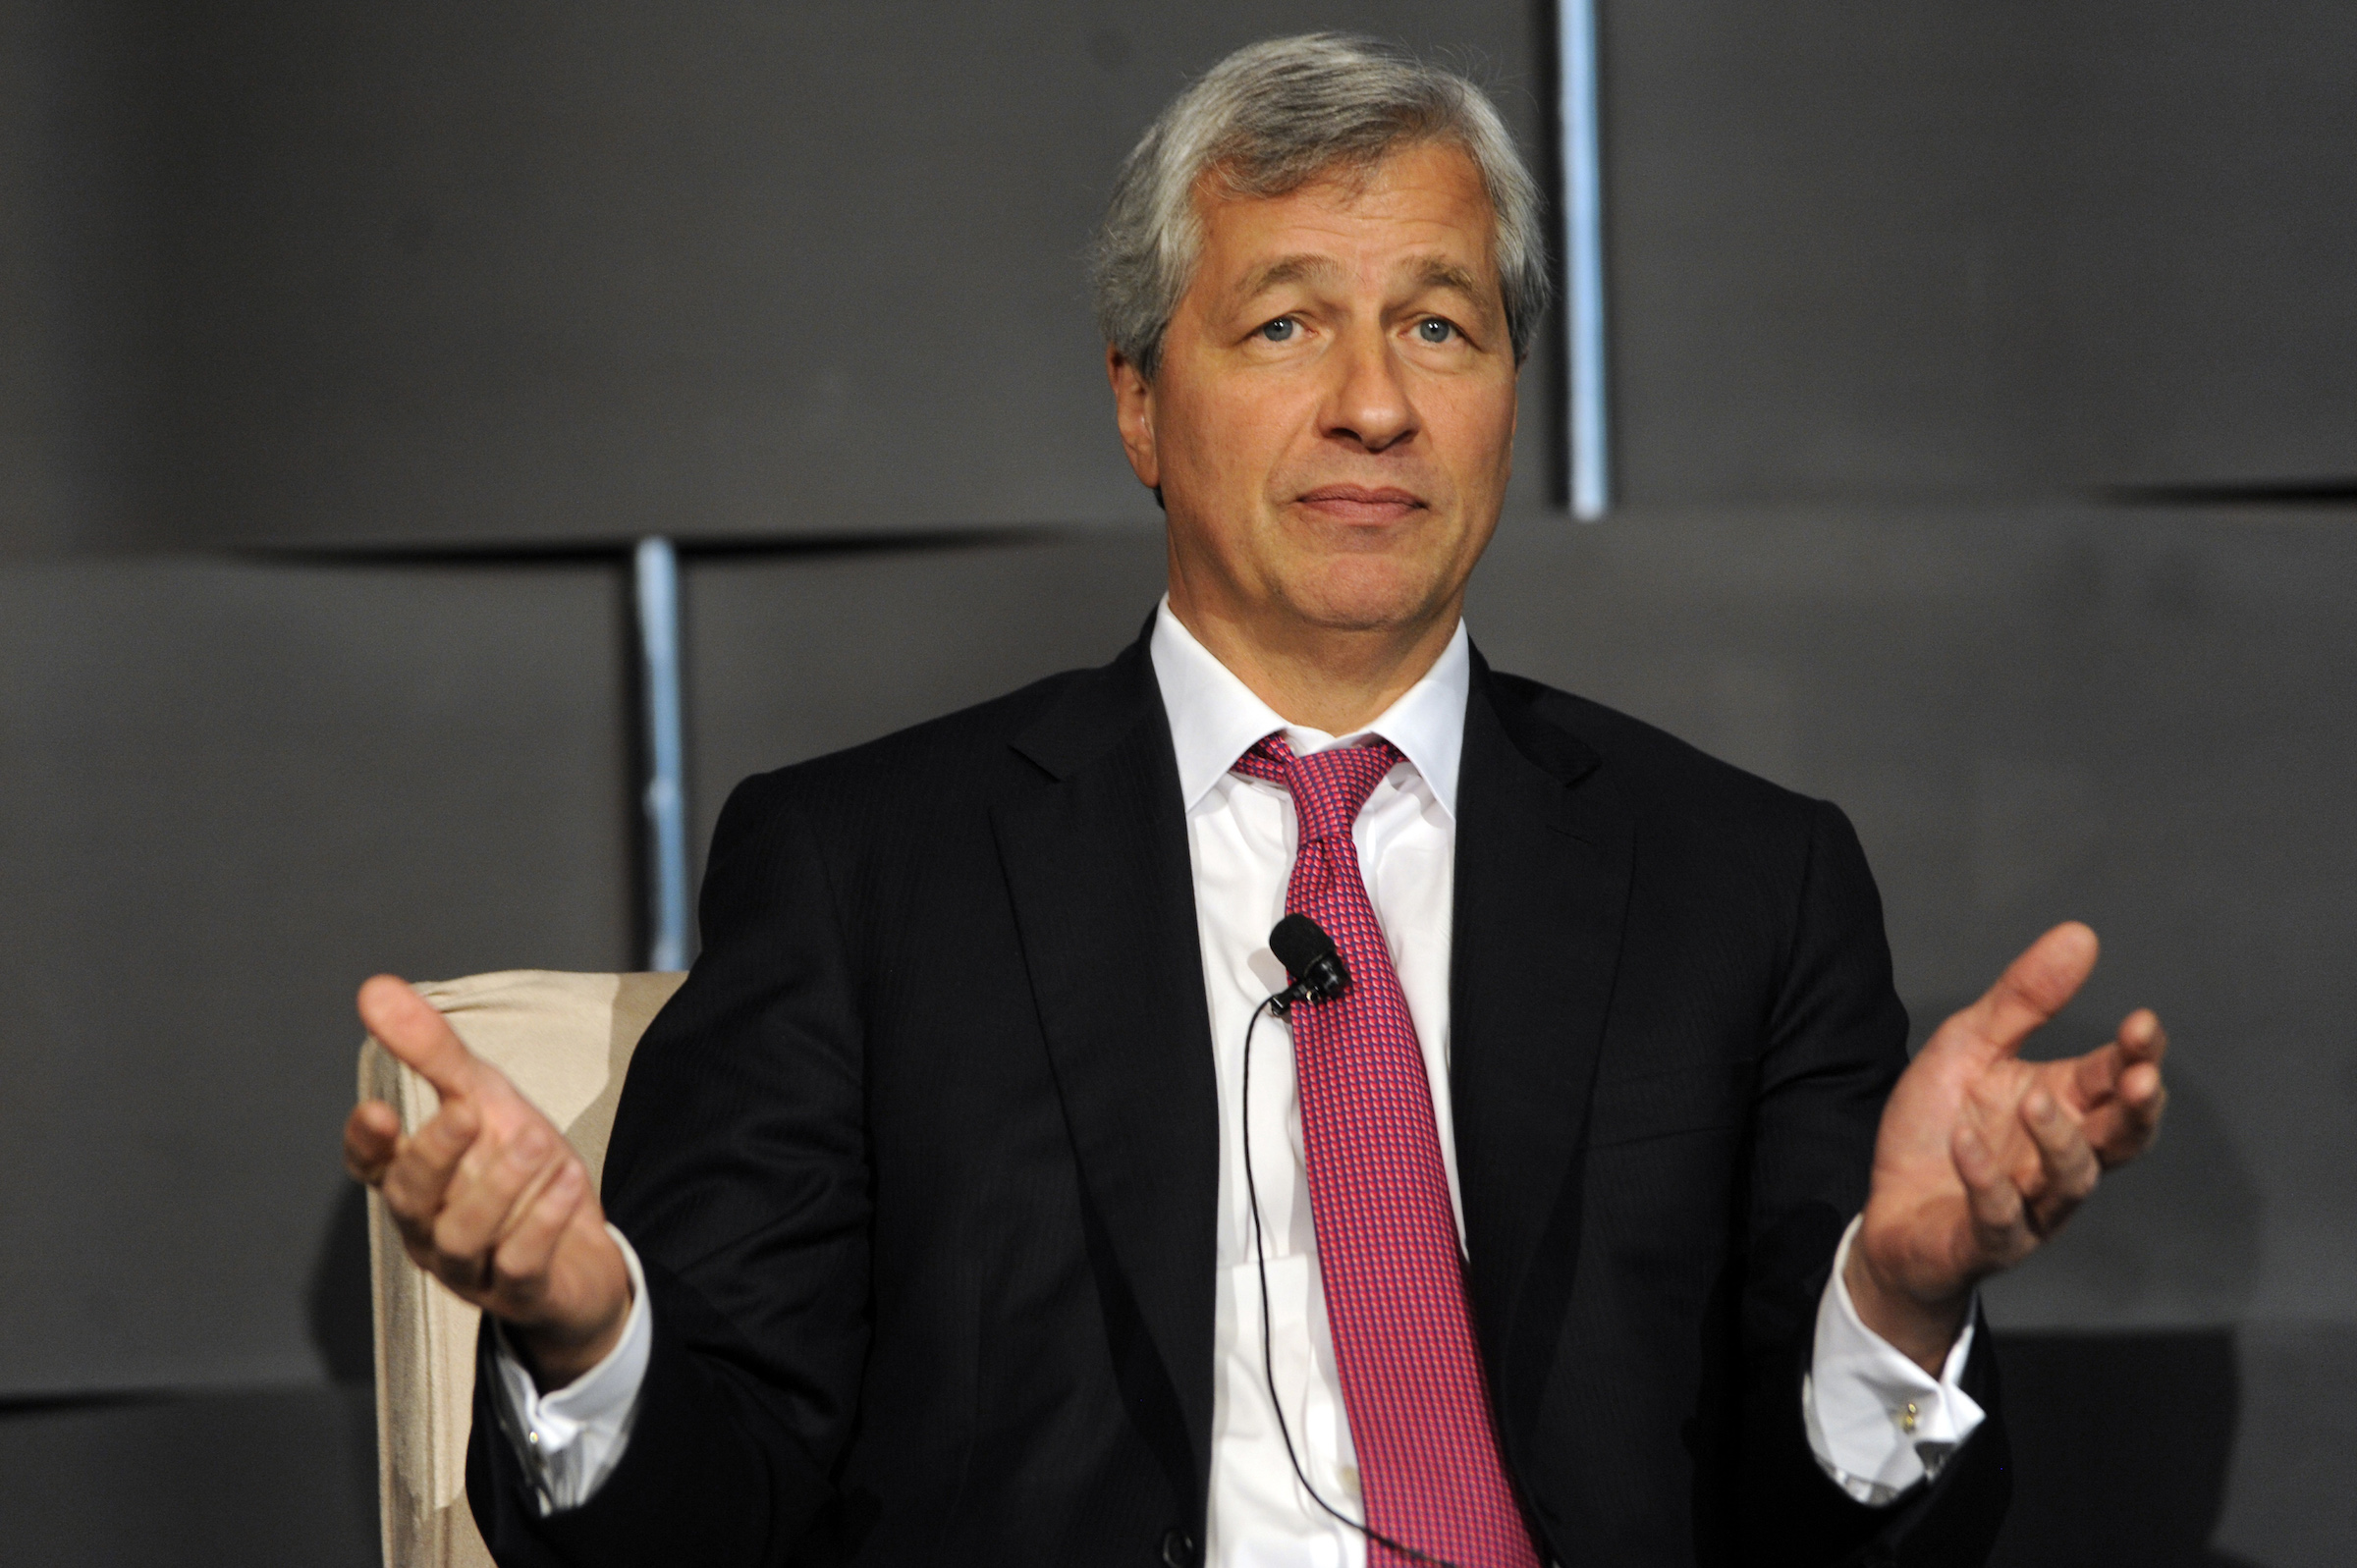 Jamie  Dimon, chairman and chief executive of JP Morgan Chase and Co, speaks at the 2012 Simon Graduate School of Business' New York City Conference in New York May 3, 2012